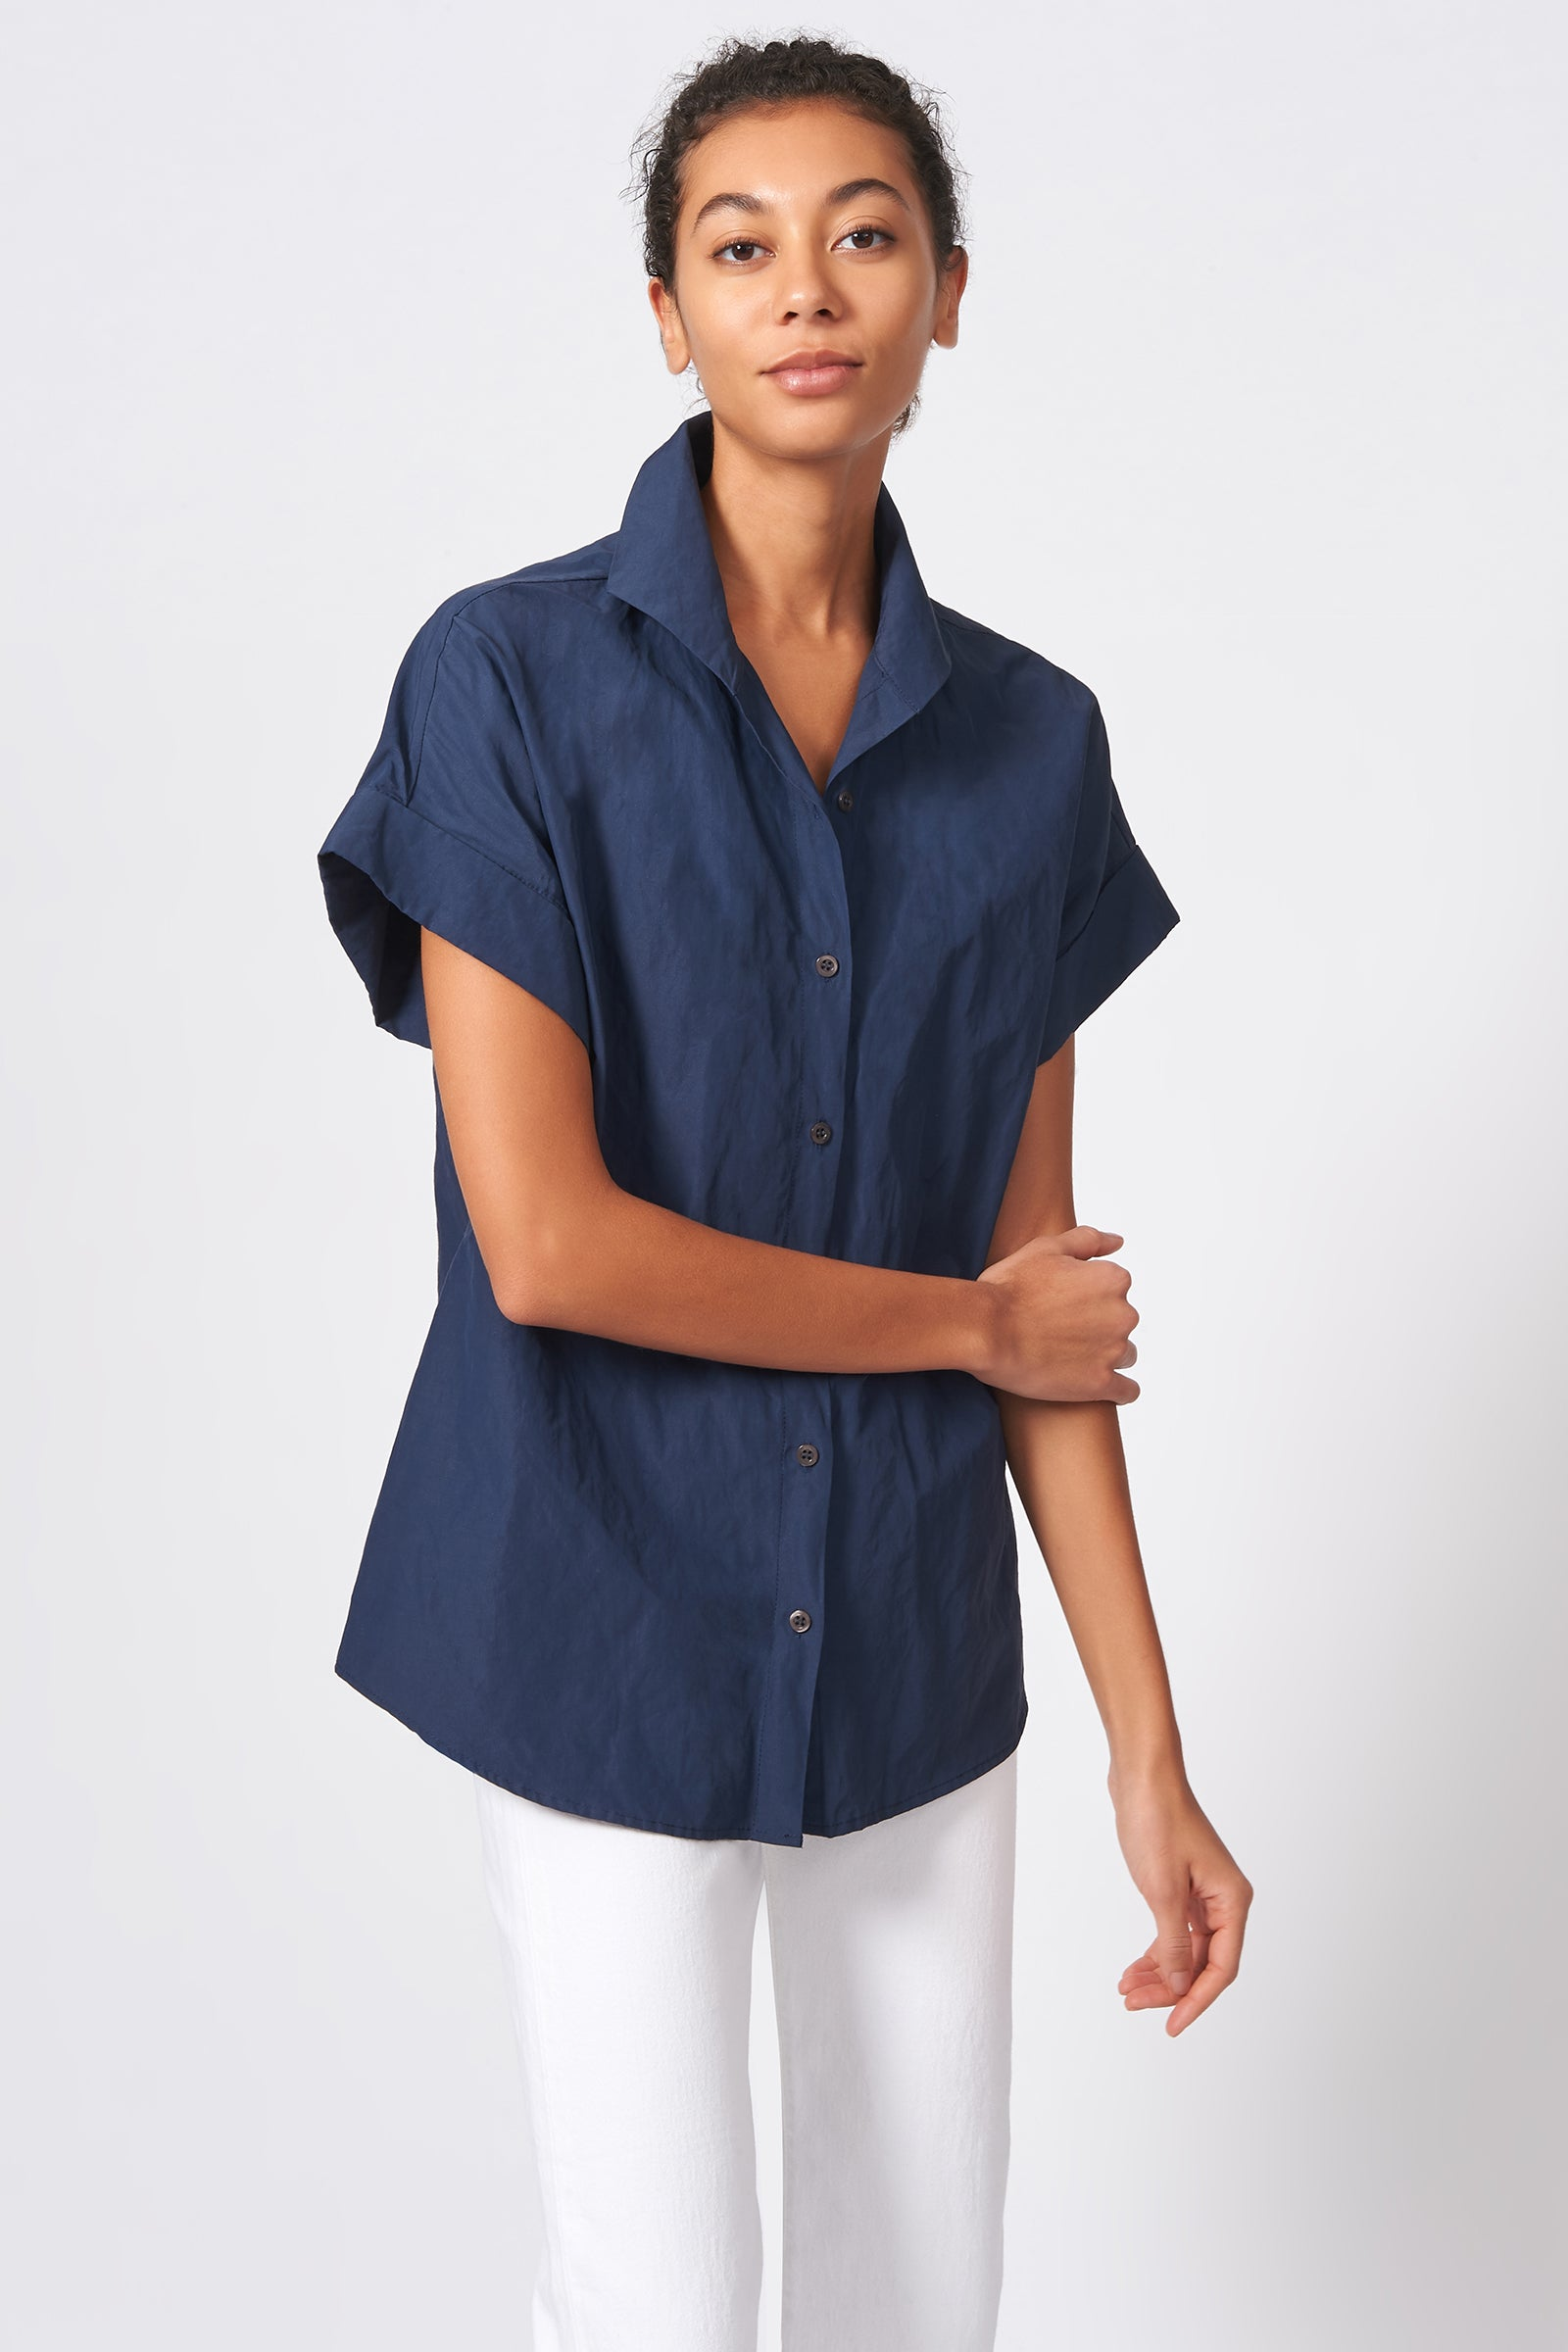 Kal Rieman Kimono Shirt in Navy Cotton Nylon on Model Front View